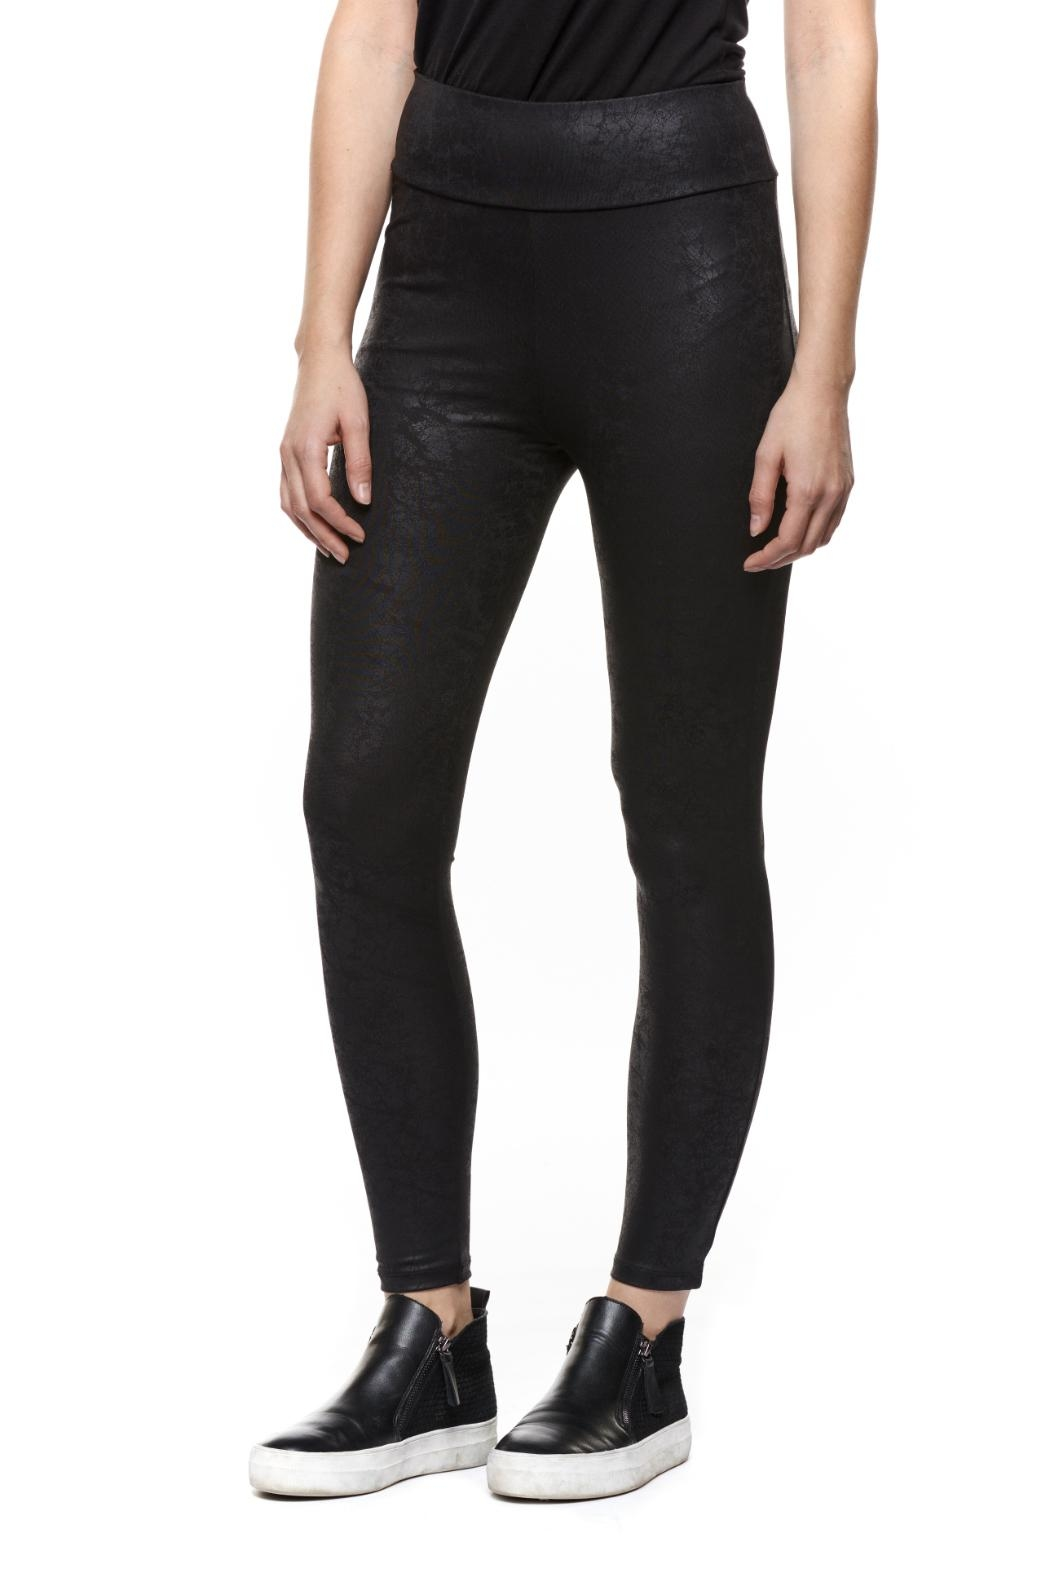 Dex Coated Faux-Leather Legging - Front Cropped Image